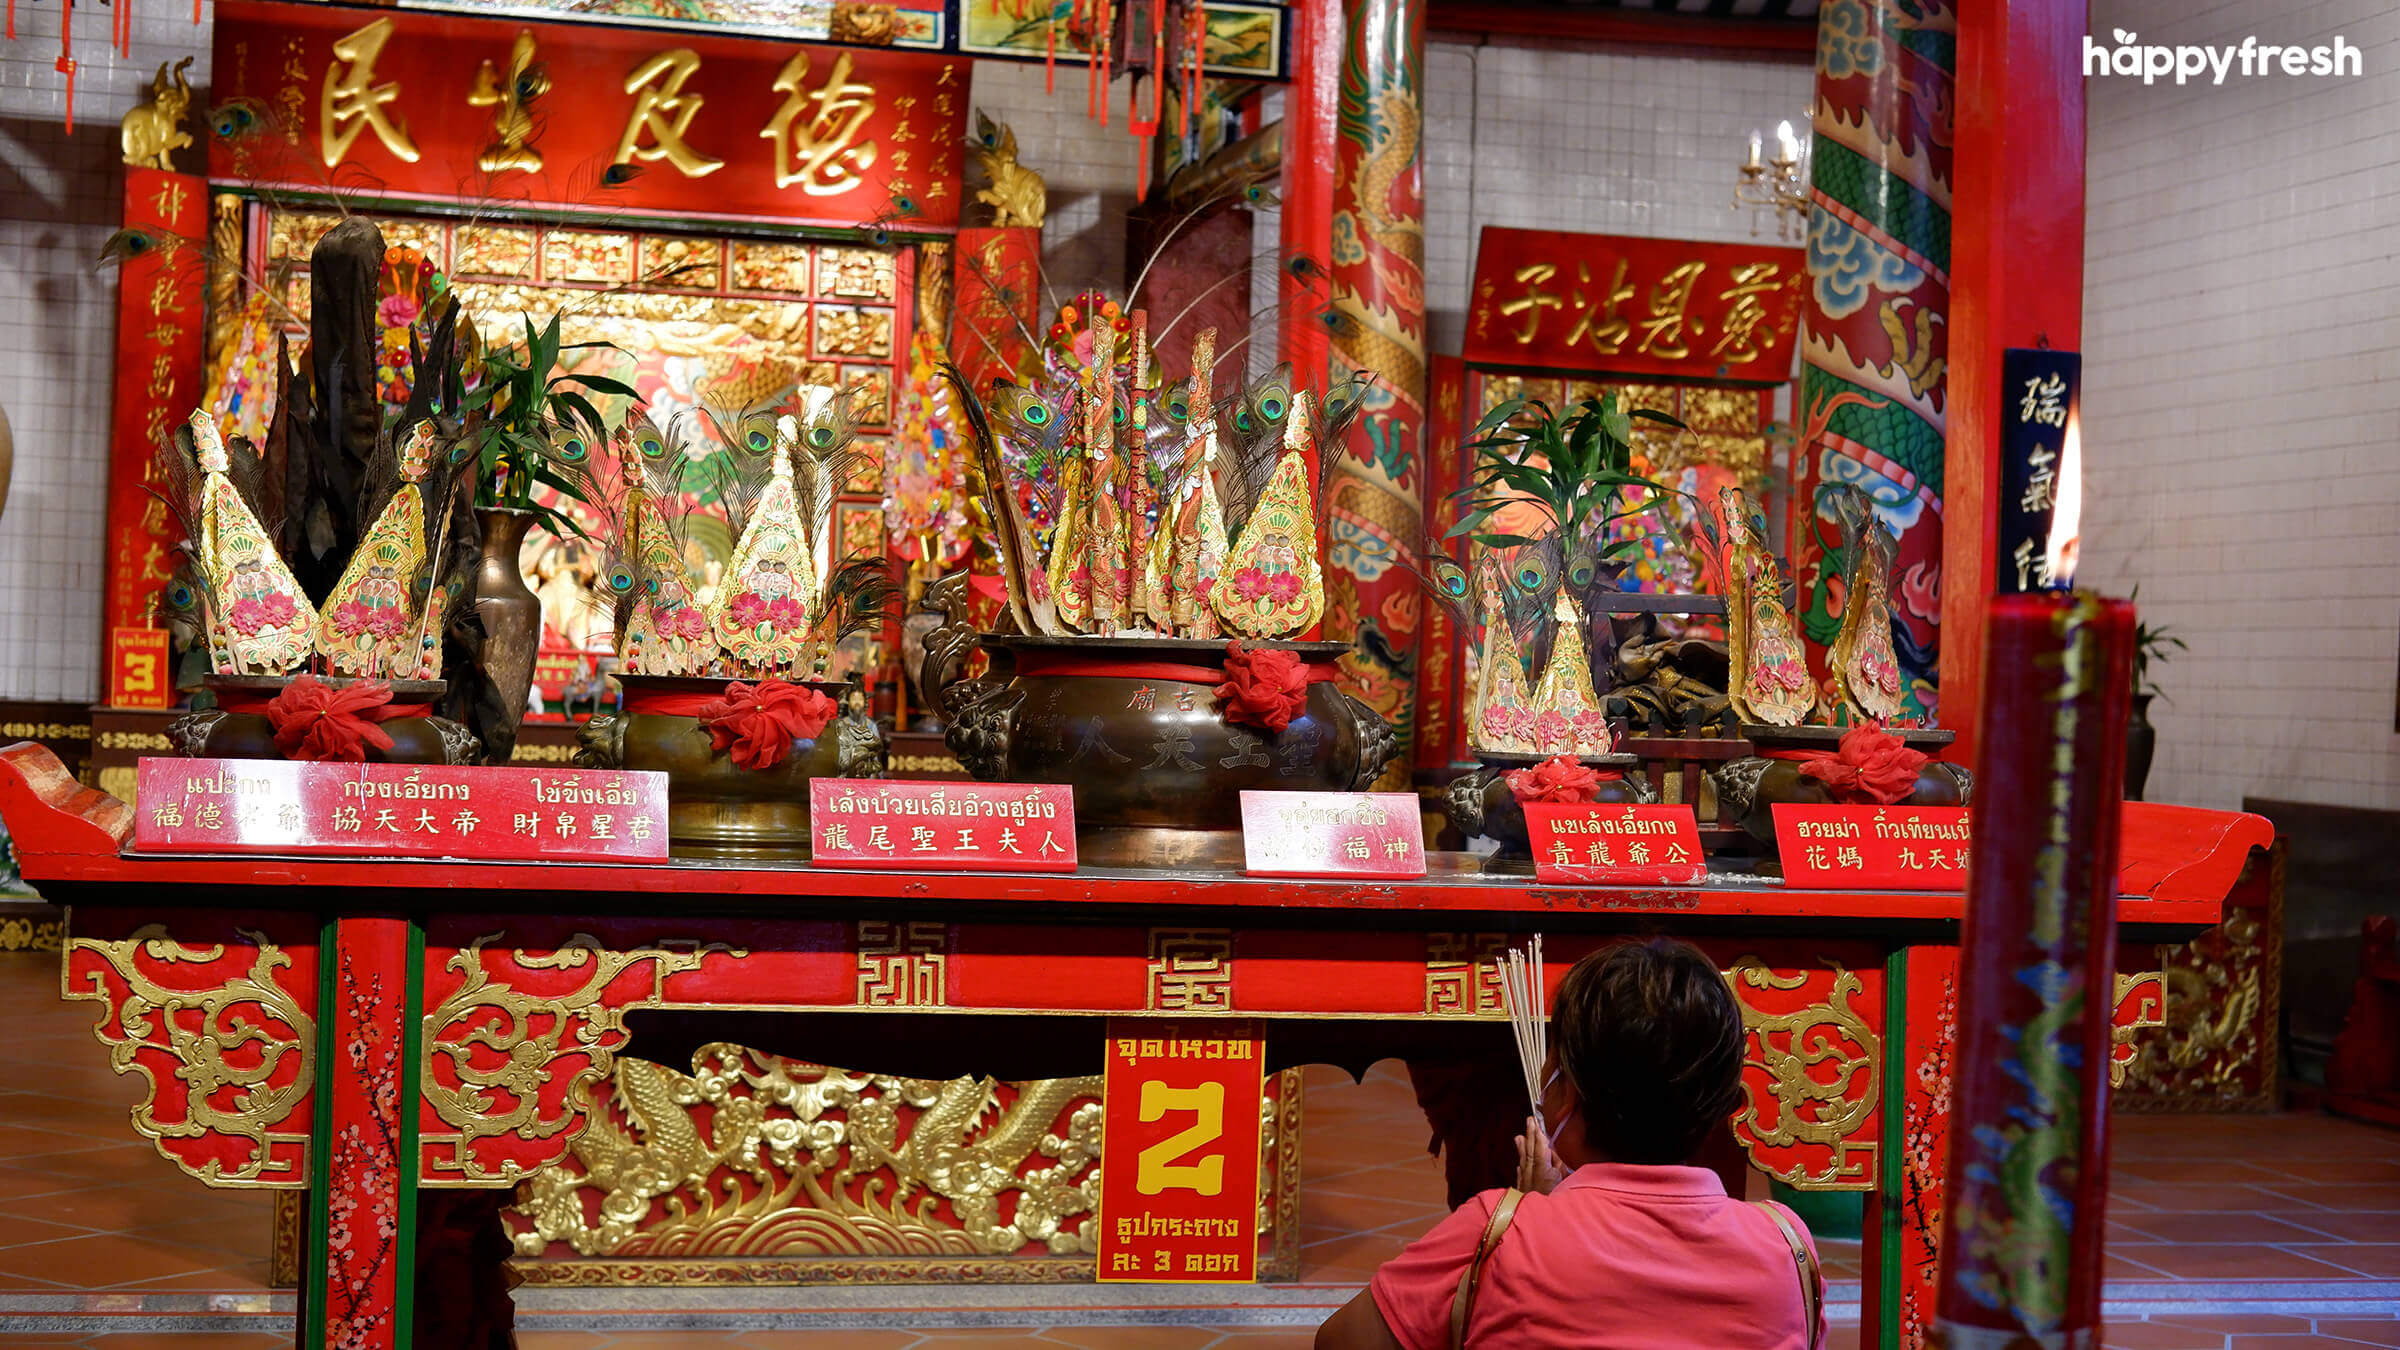 HappyFresh_Visit_6_Chinese_Shrines_In_Chinatown_Leng_Buai_Ia_Shrine_3